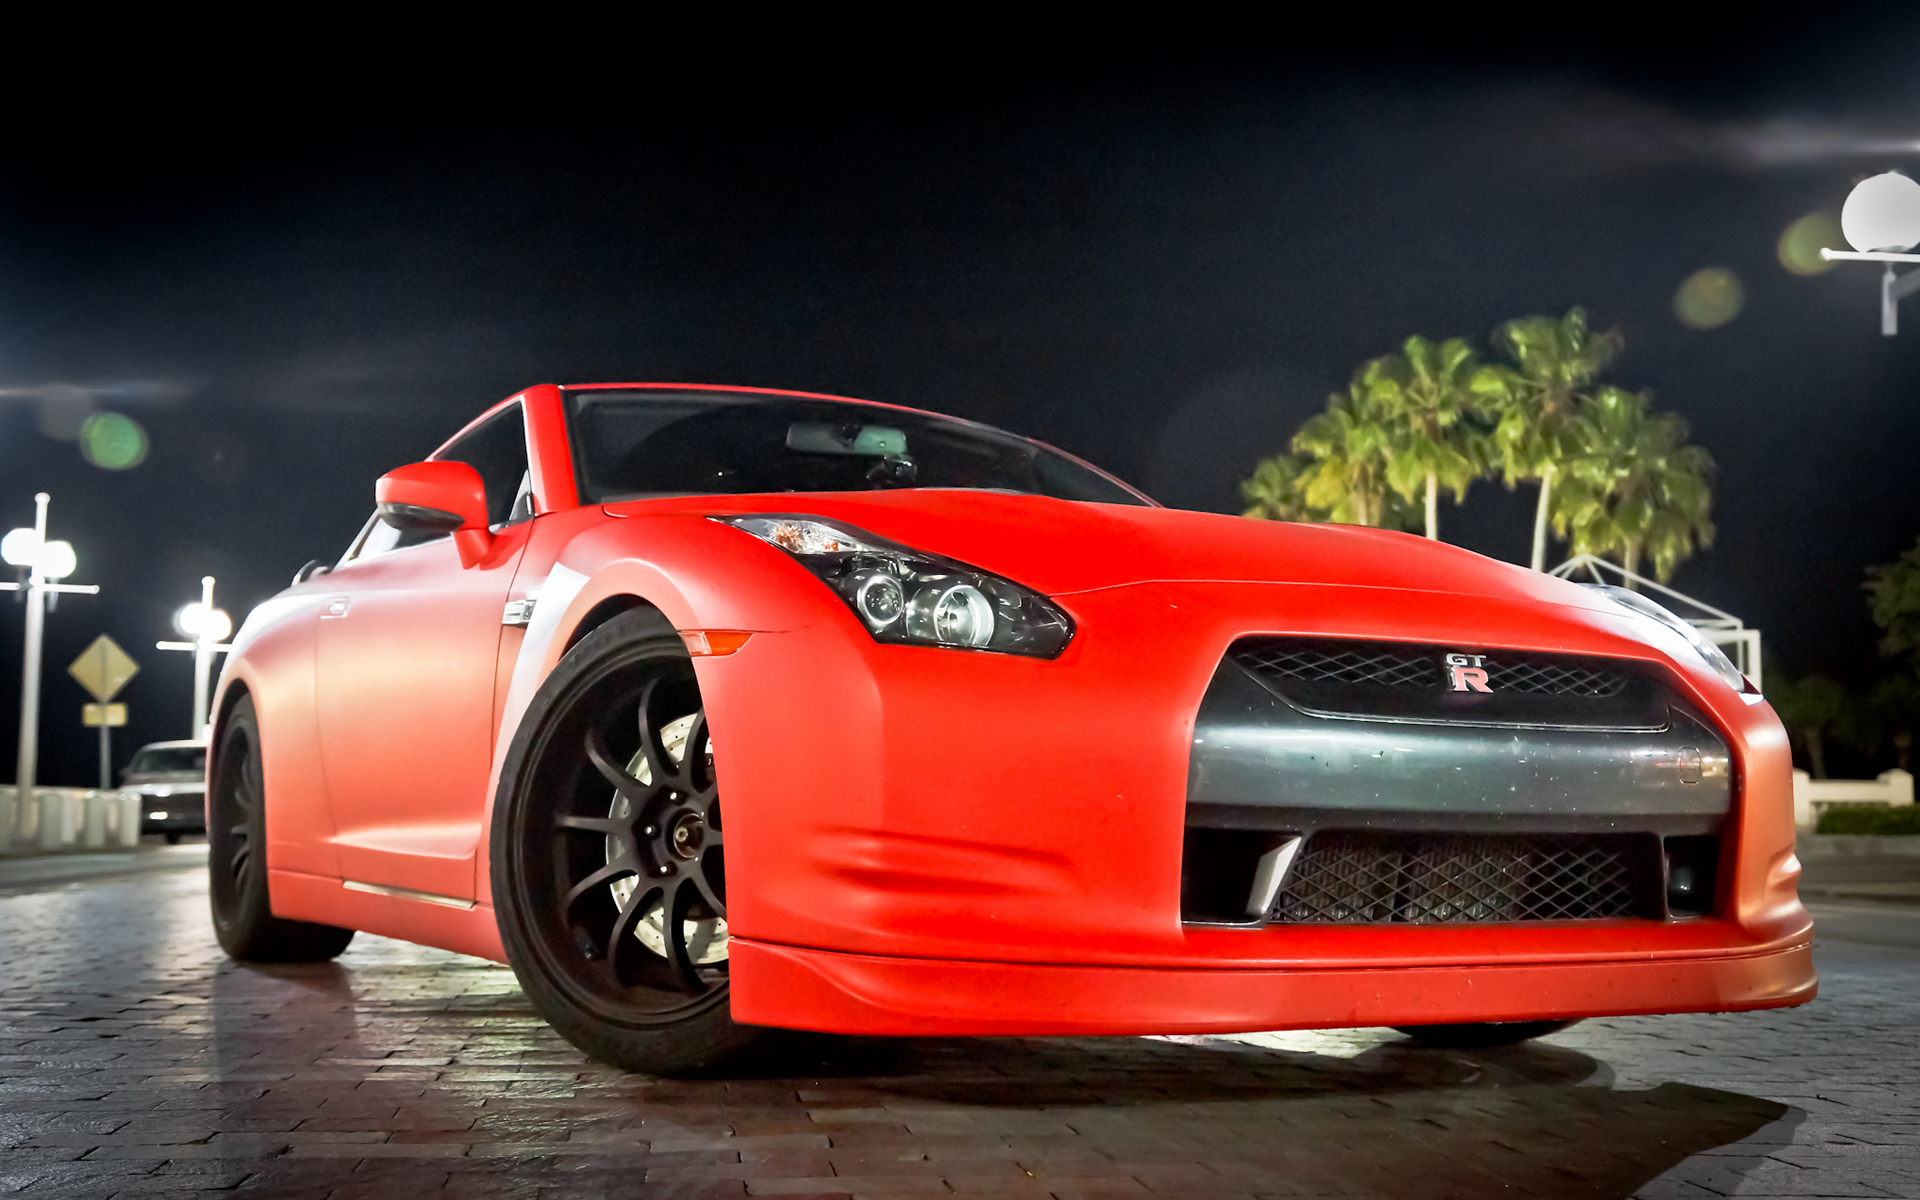 Red Nissan GTR Wallpaper 20309